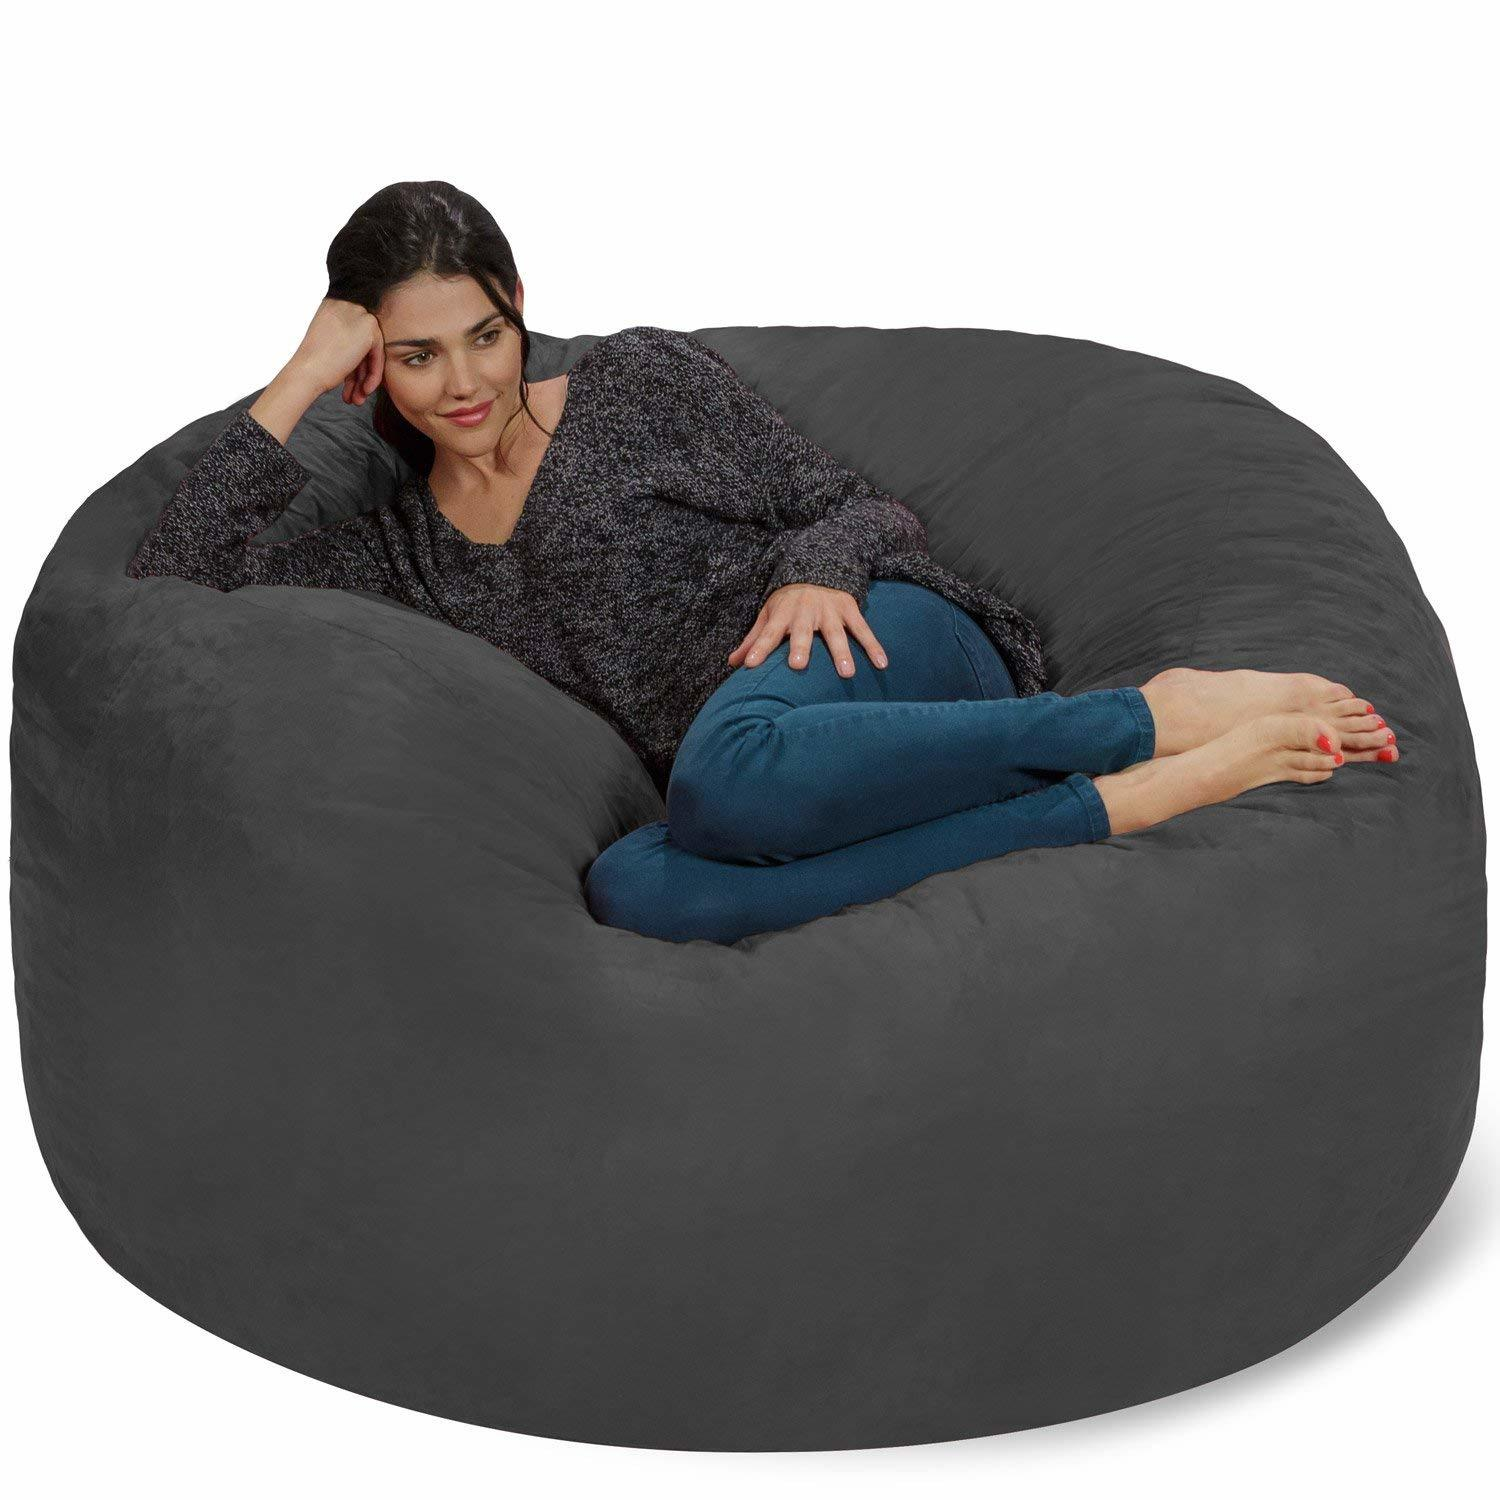 Bean Bags Chair Best Bean Bag Chairs Top 10 Bean Bag Brands And Reviews